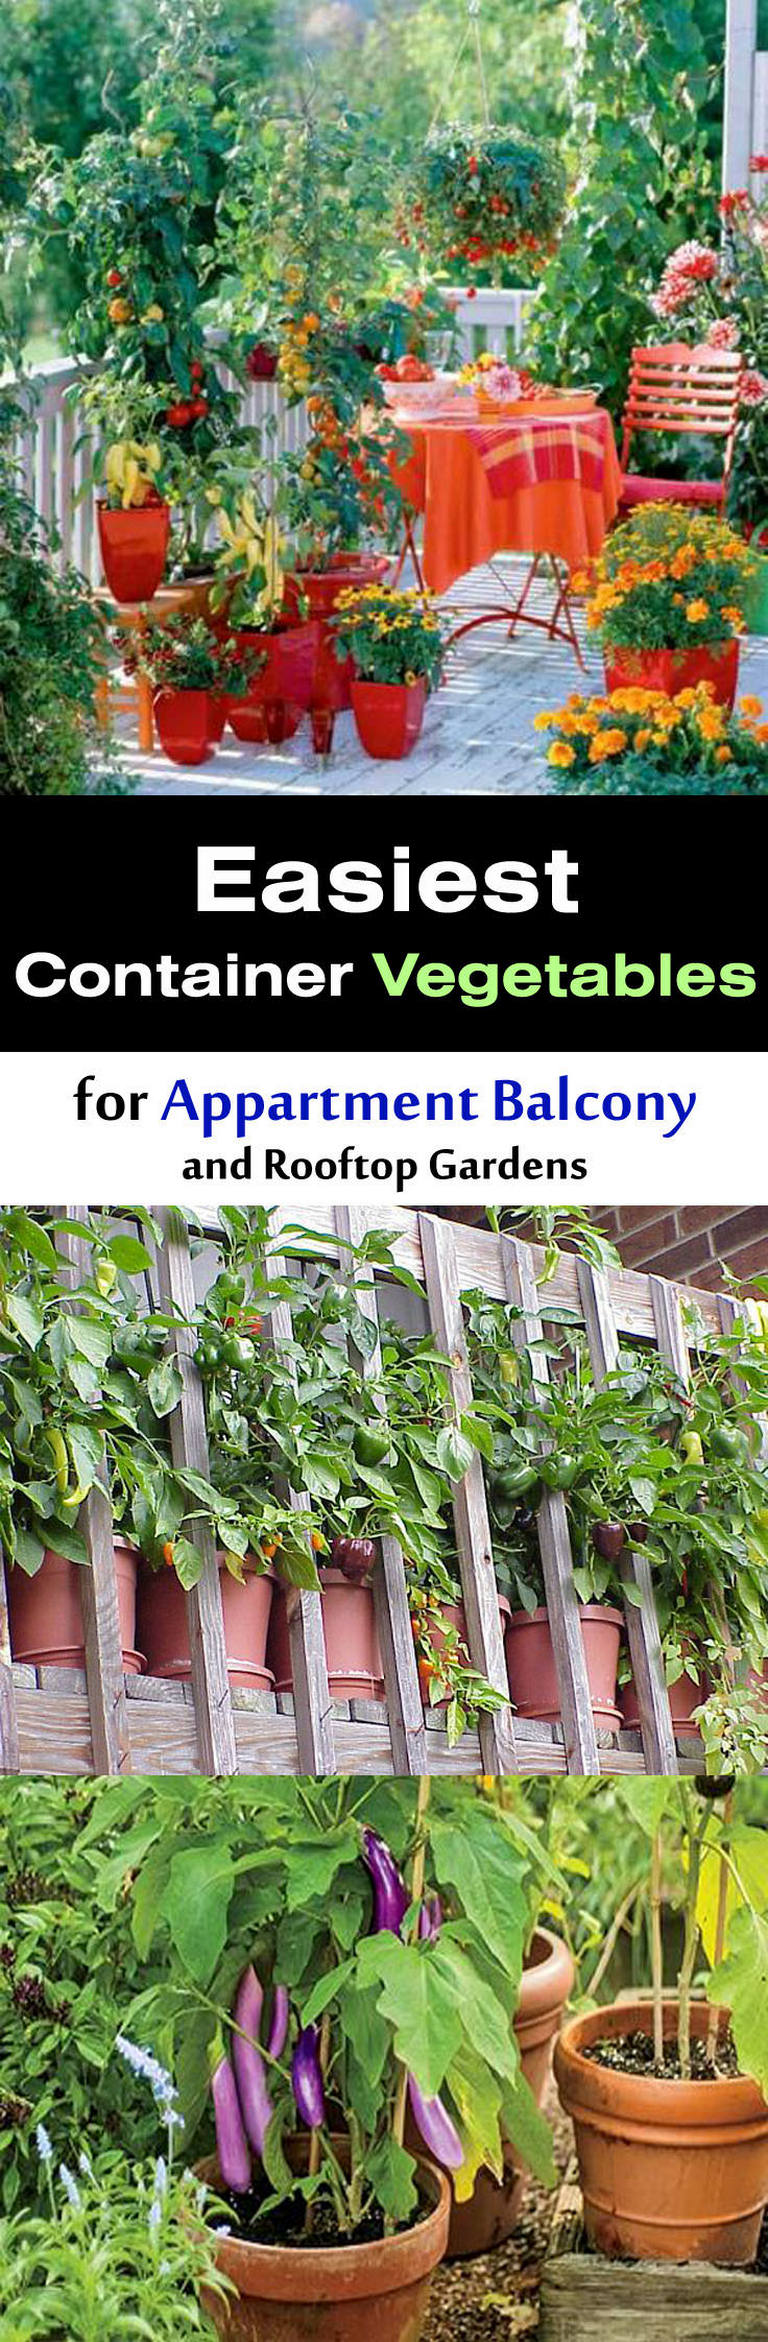 Explore Container Gardening Vegetables And More!